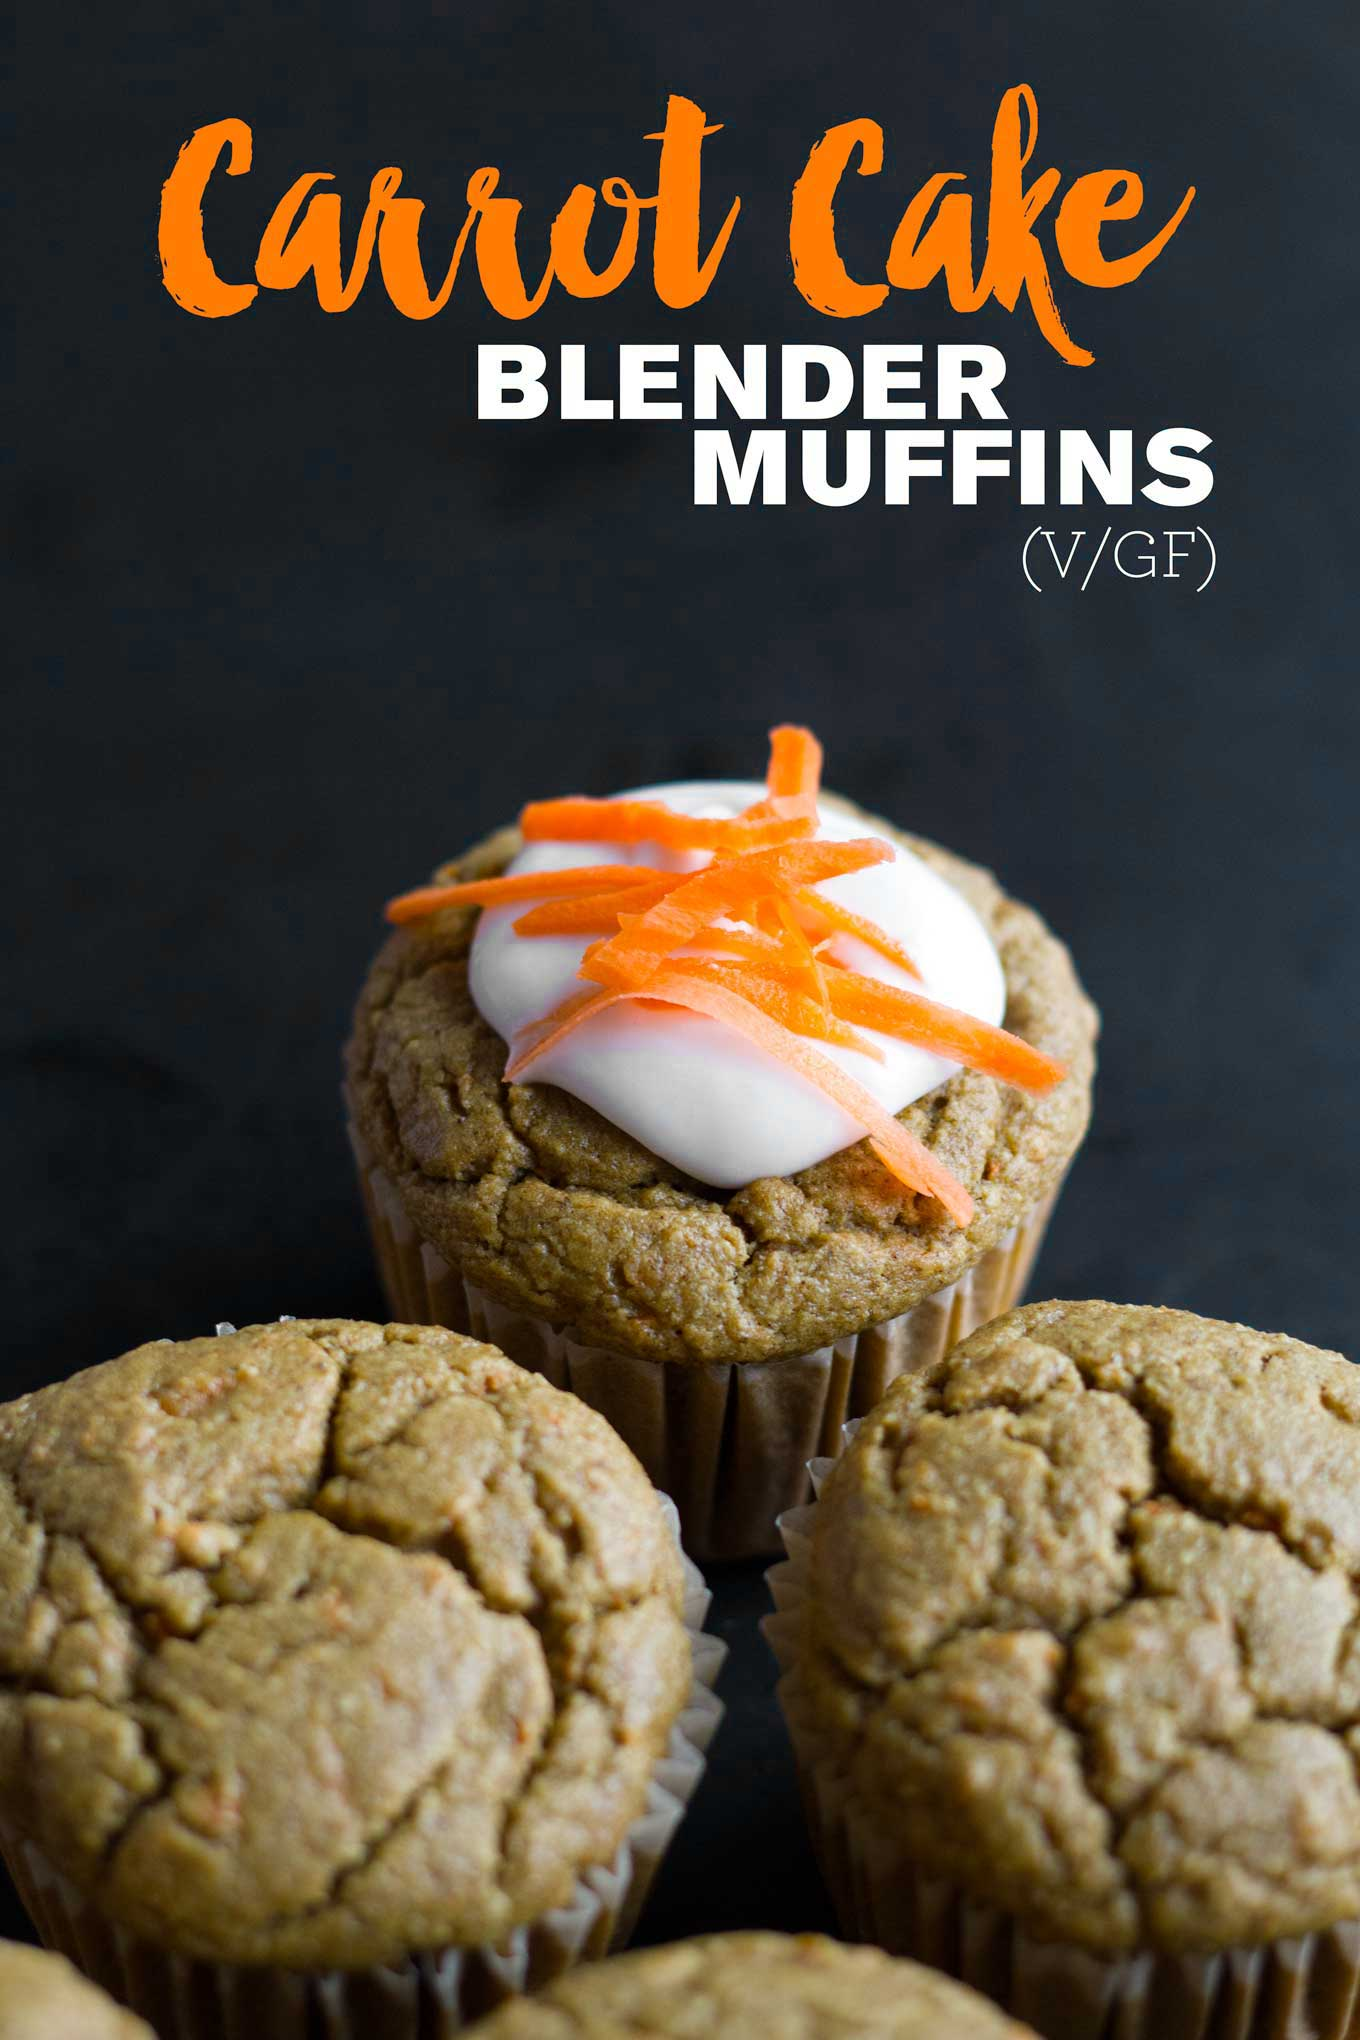 Carrot Cake Blender Muffins | Vegan Muffins | Gluten-free Muffins | Healthy Muffins | https://eatwithinyourmeans.com/